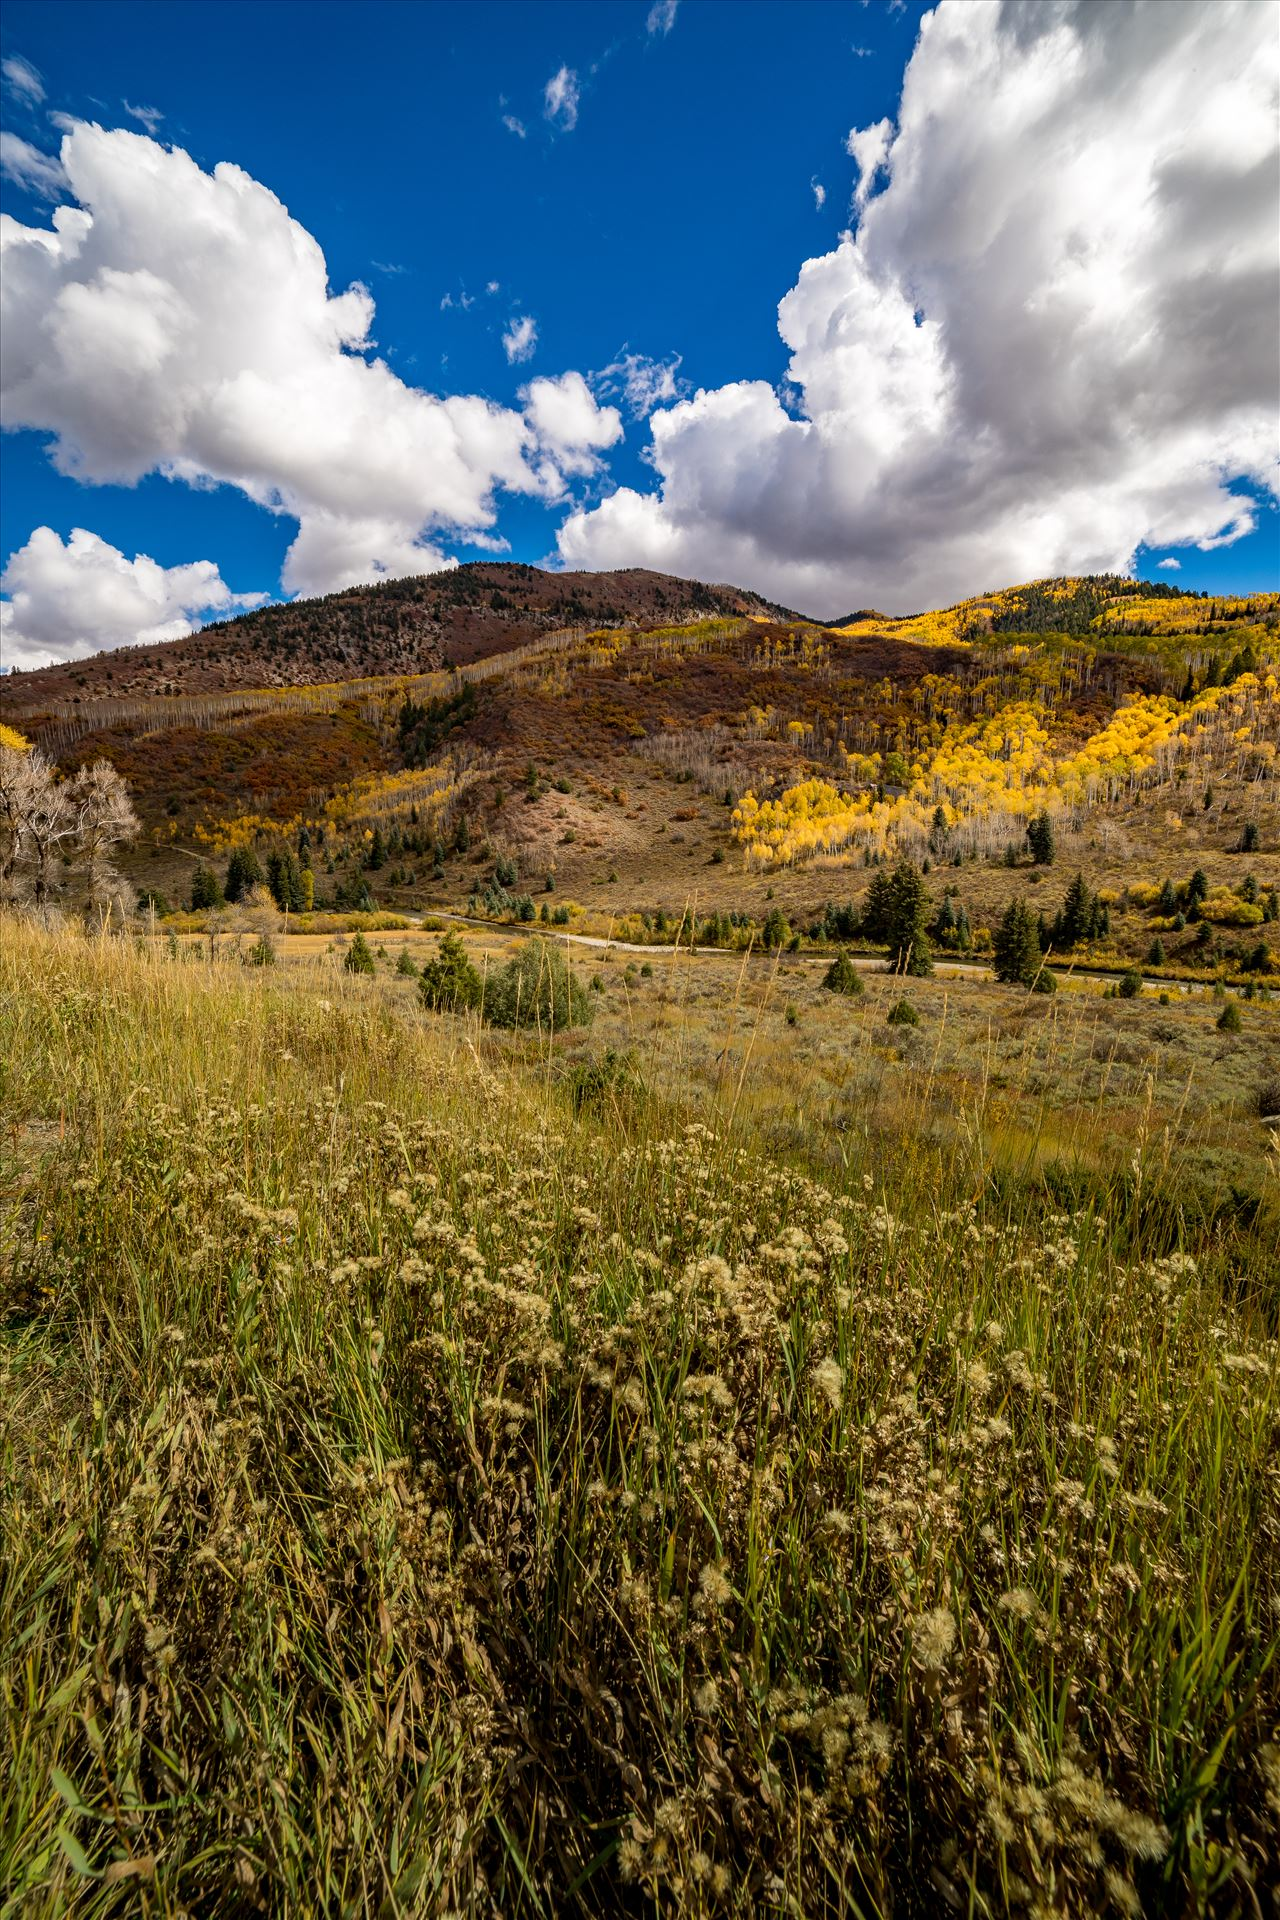 Fall in Aspen Snowmass Wilderness Area No 2 - Summer grasses give way to fall colors between Redstone and Marble, Colorado. by D Scott Smith